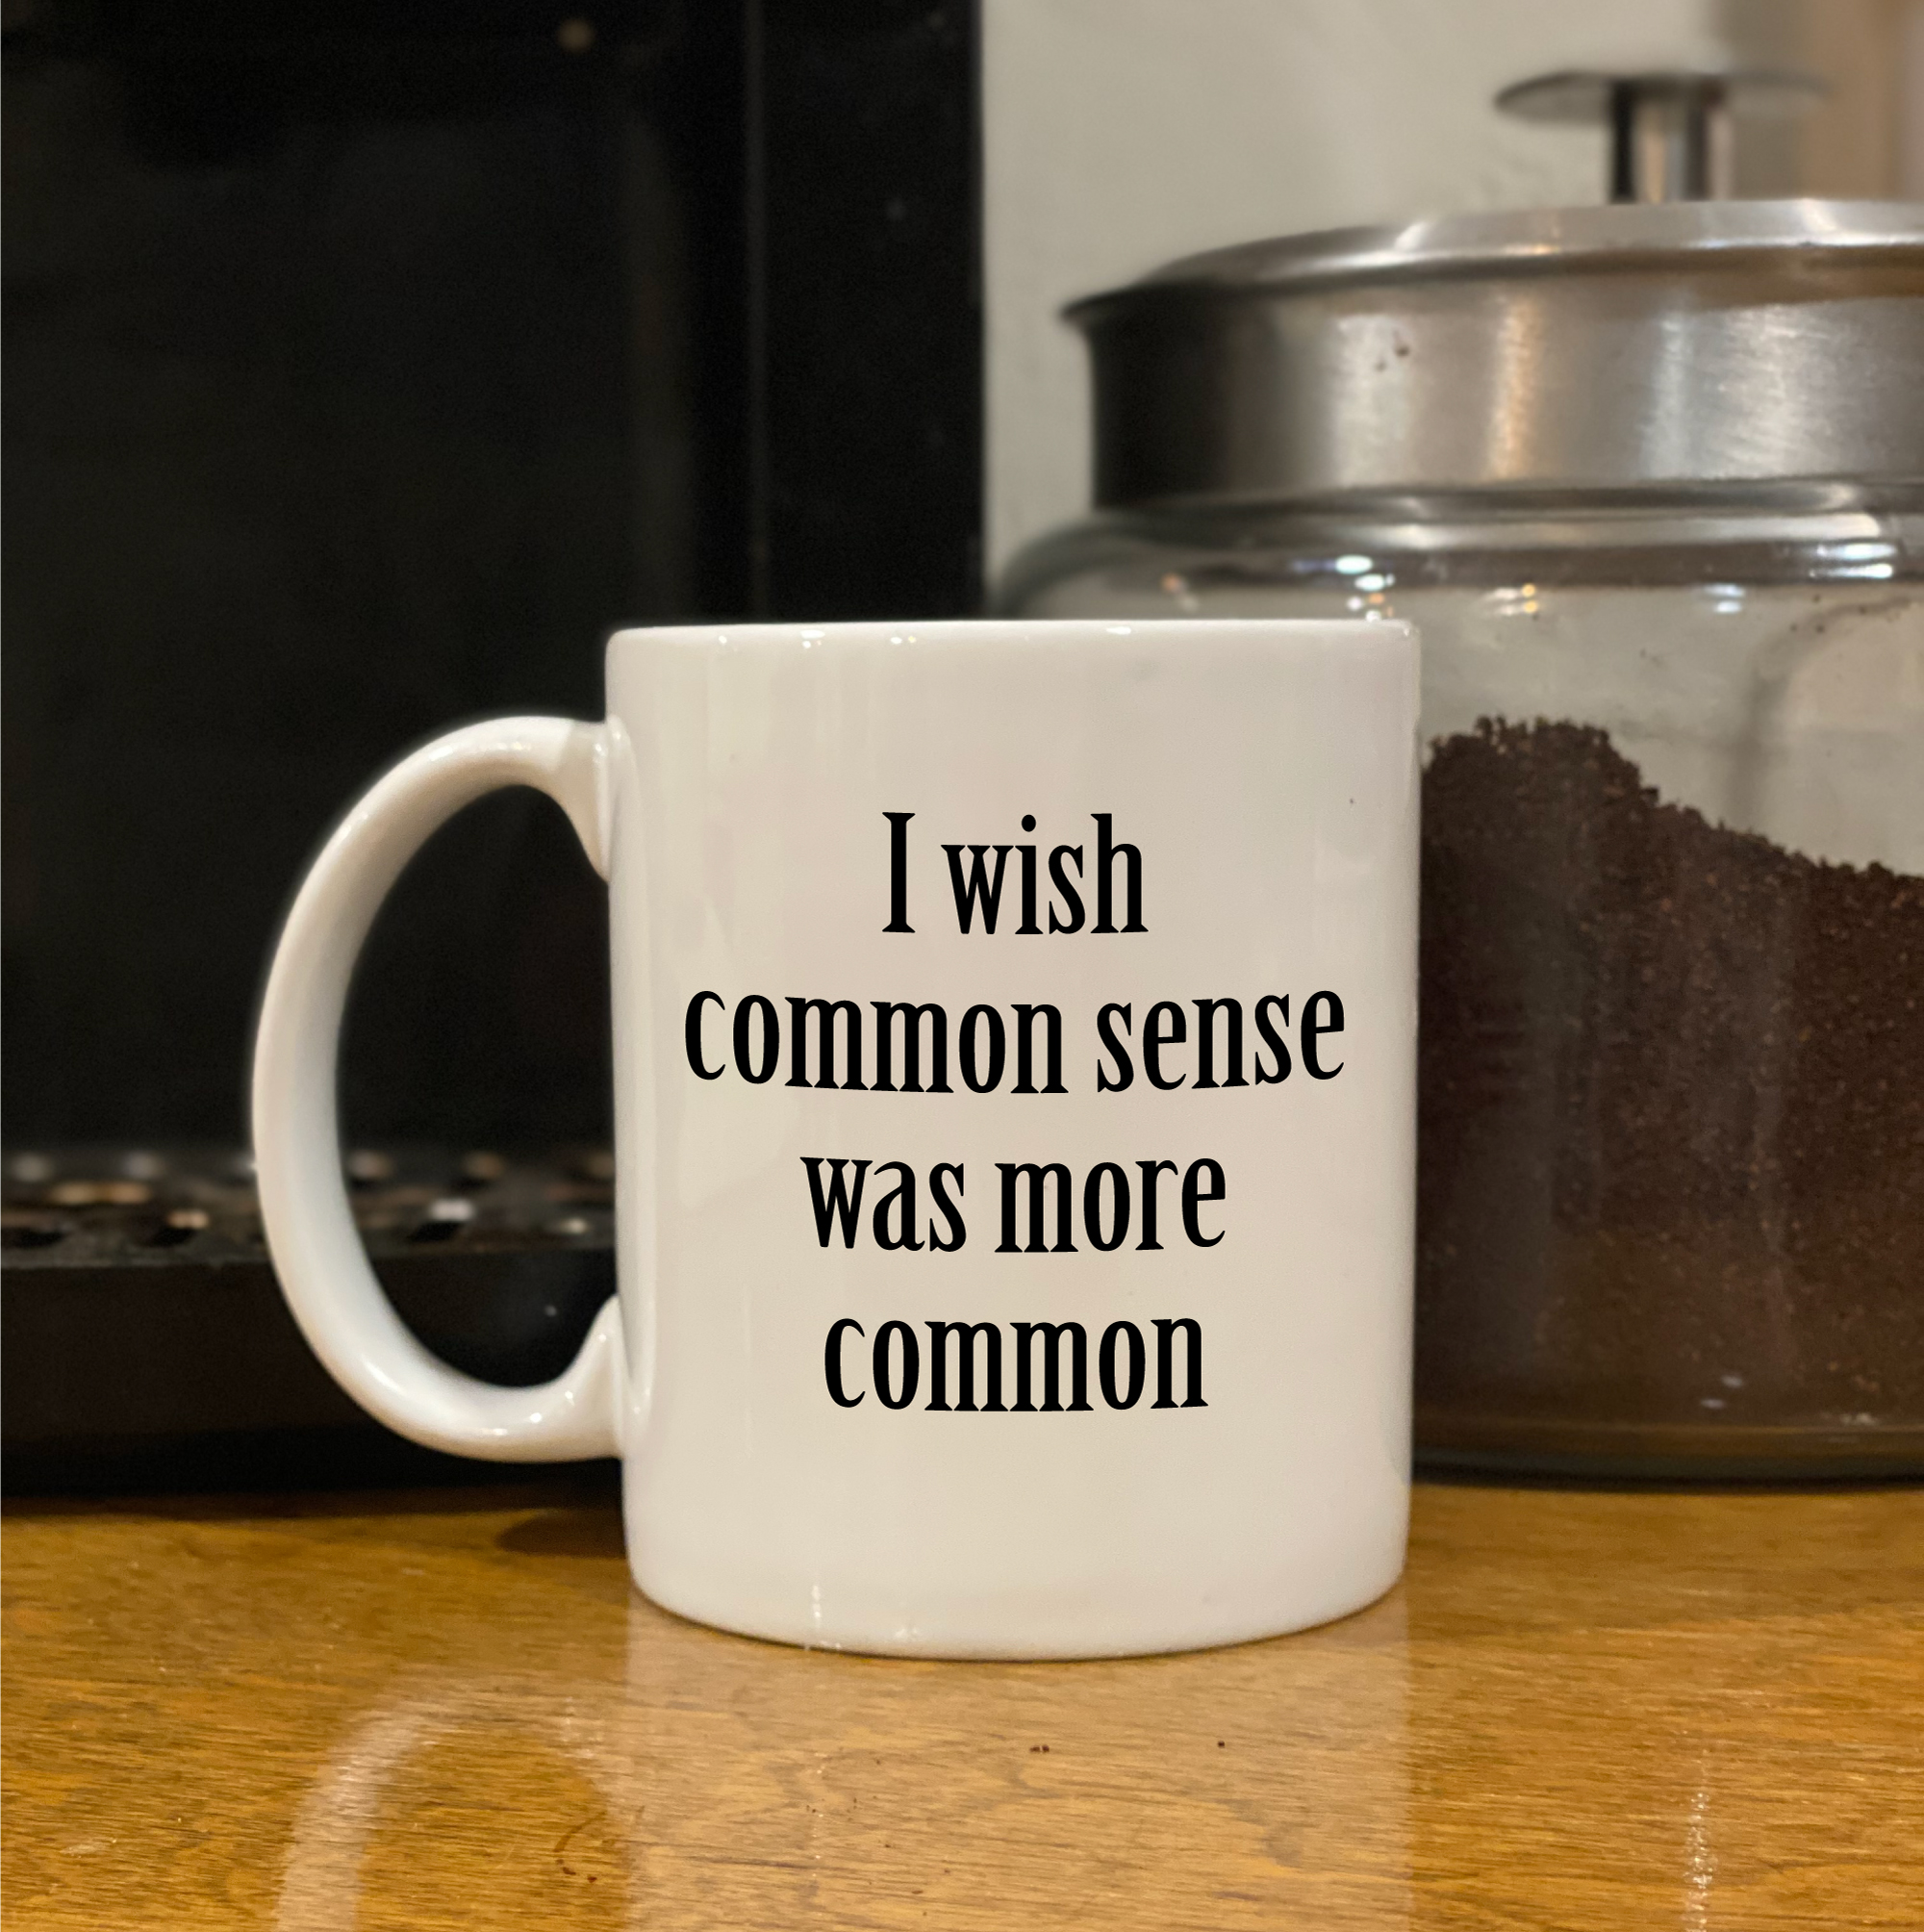 coffee mug - I wish common sense was more common